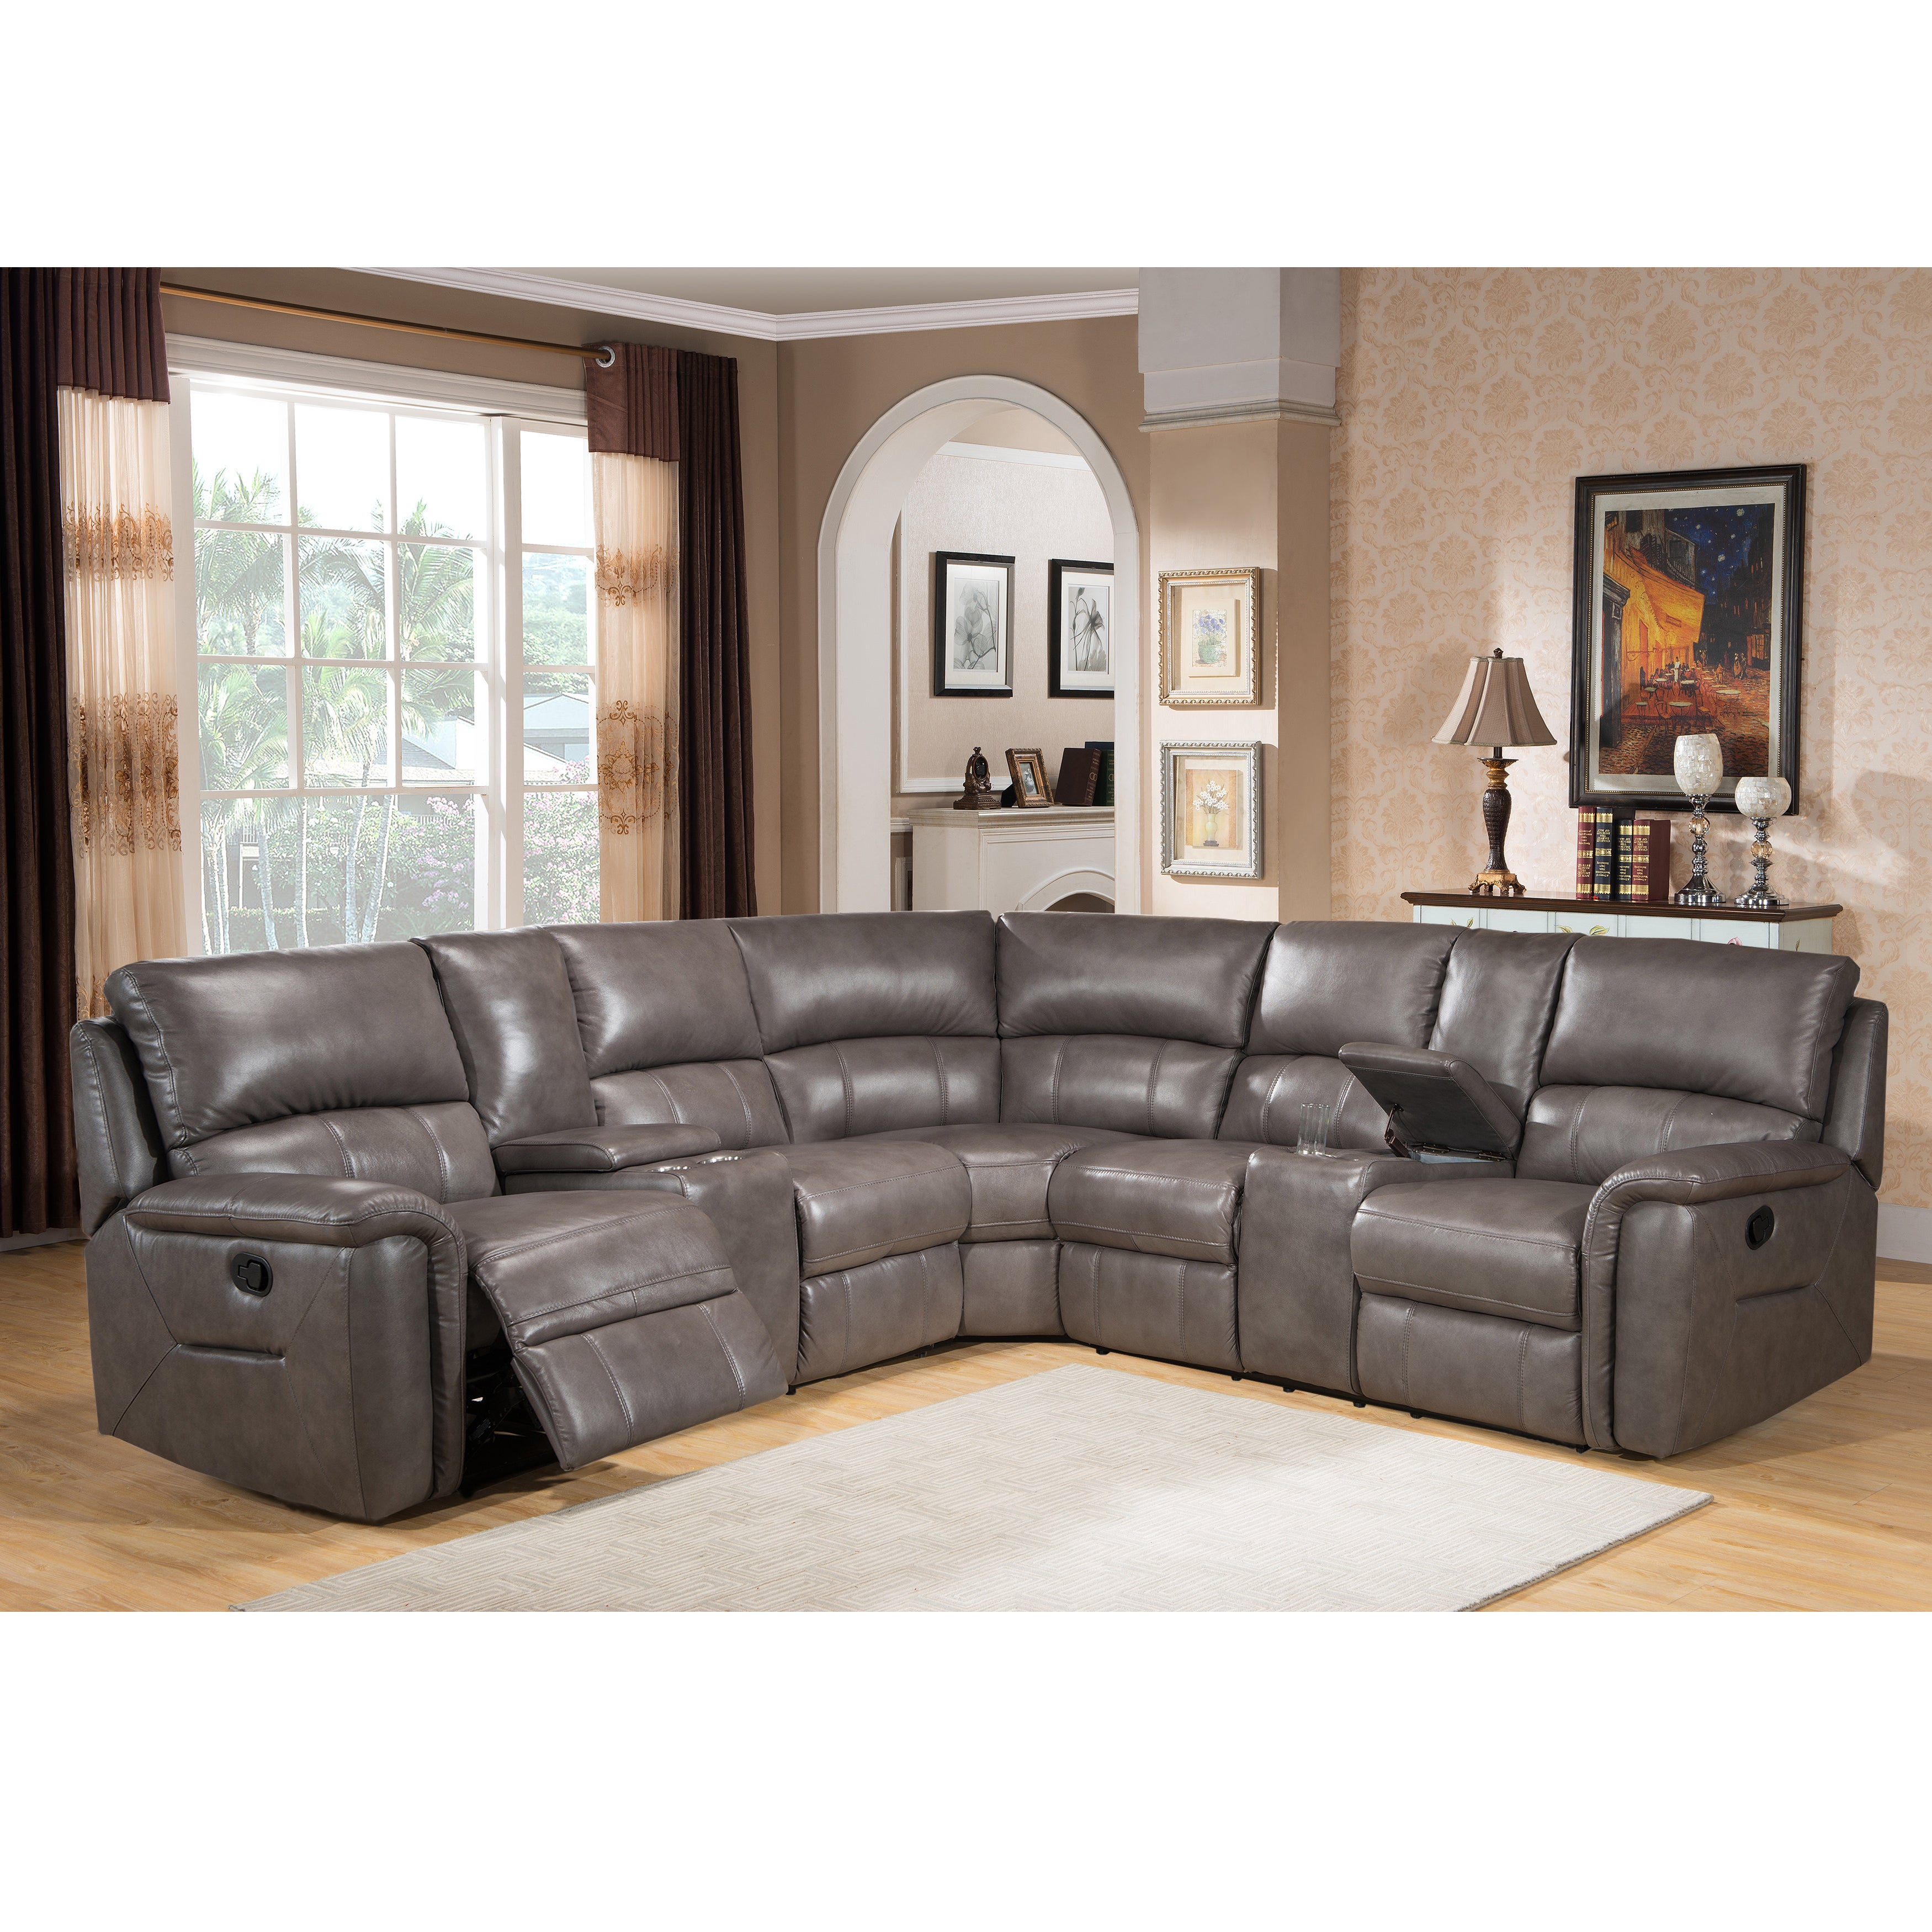 Cortez Premium Top Grain Gray Leather Reclining Sectional...